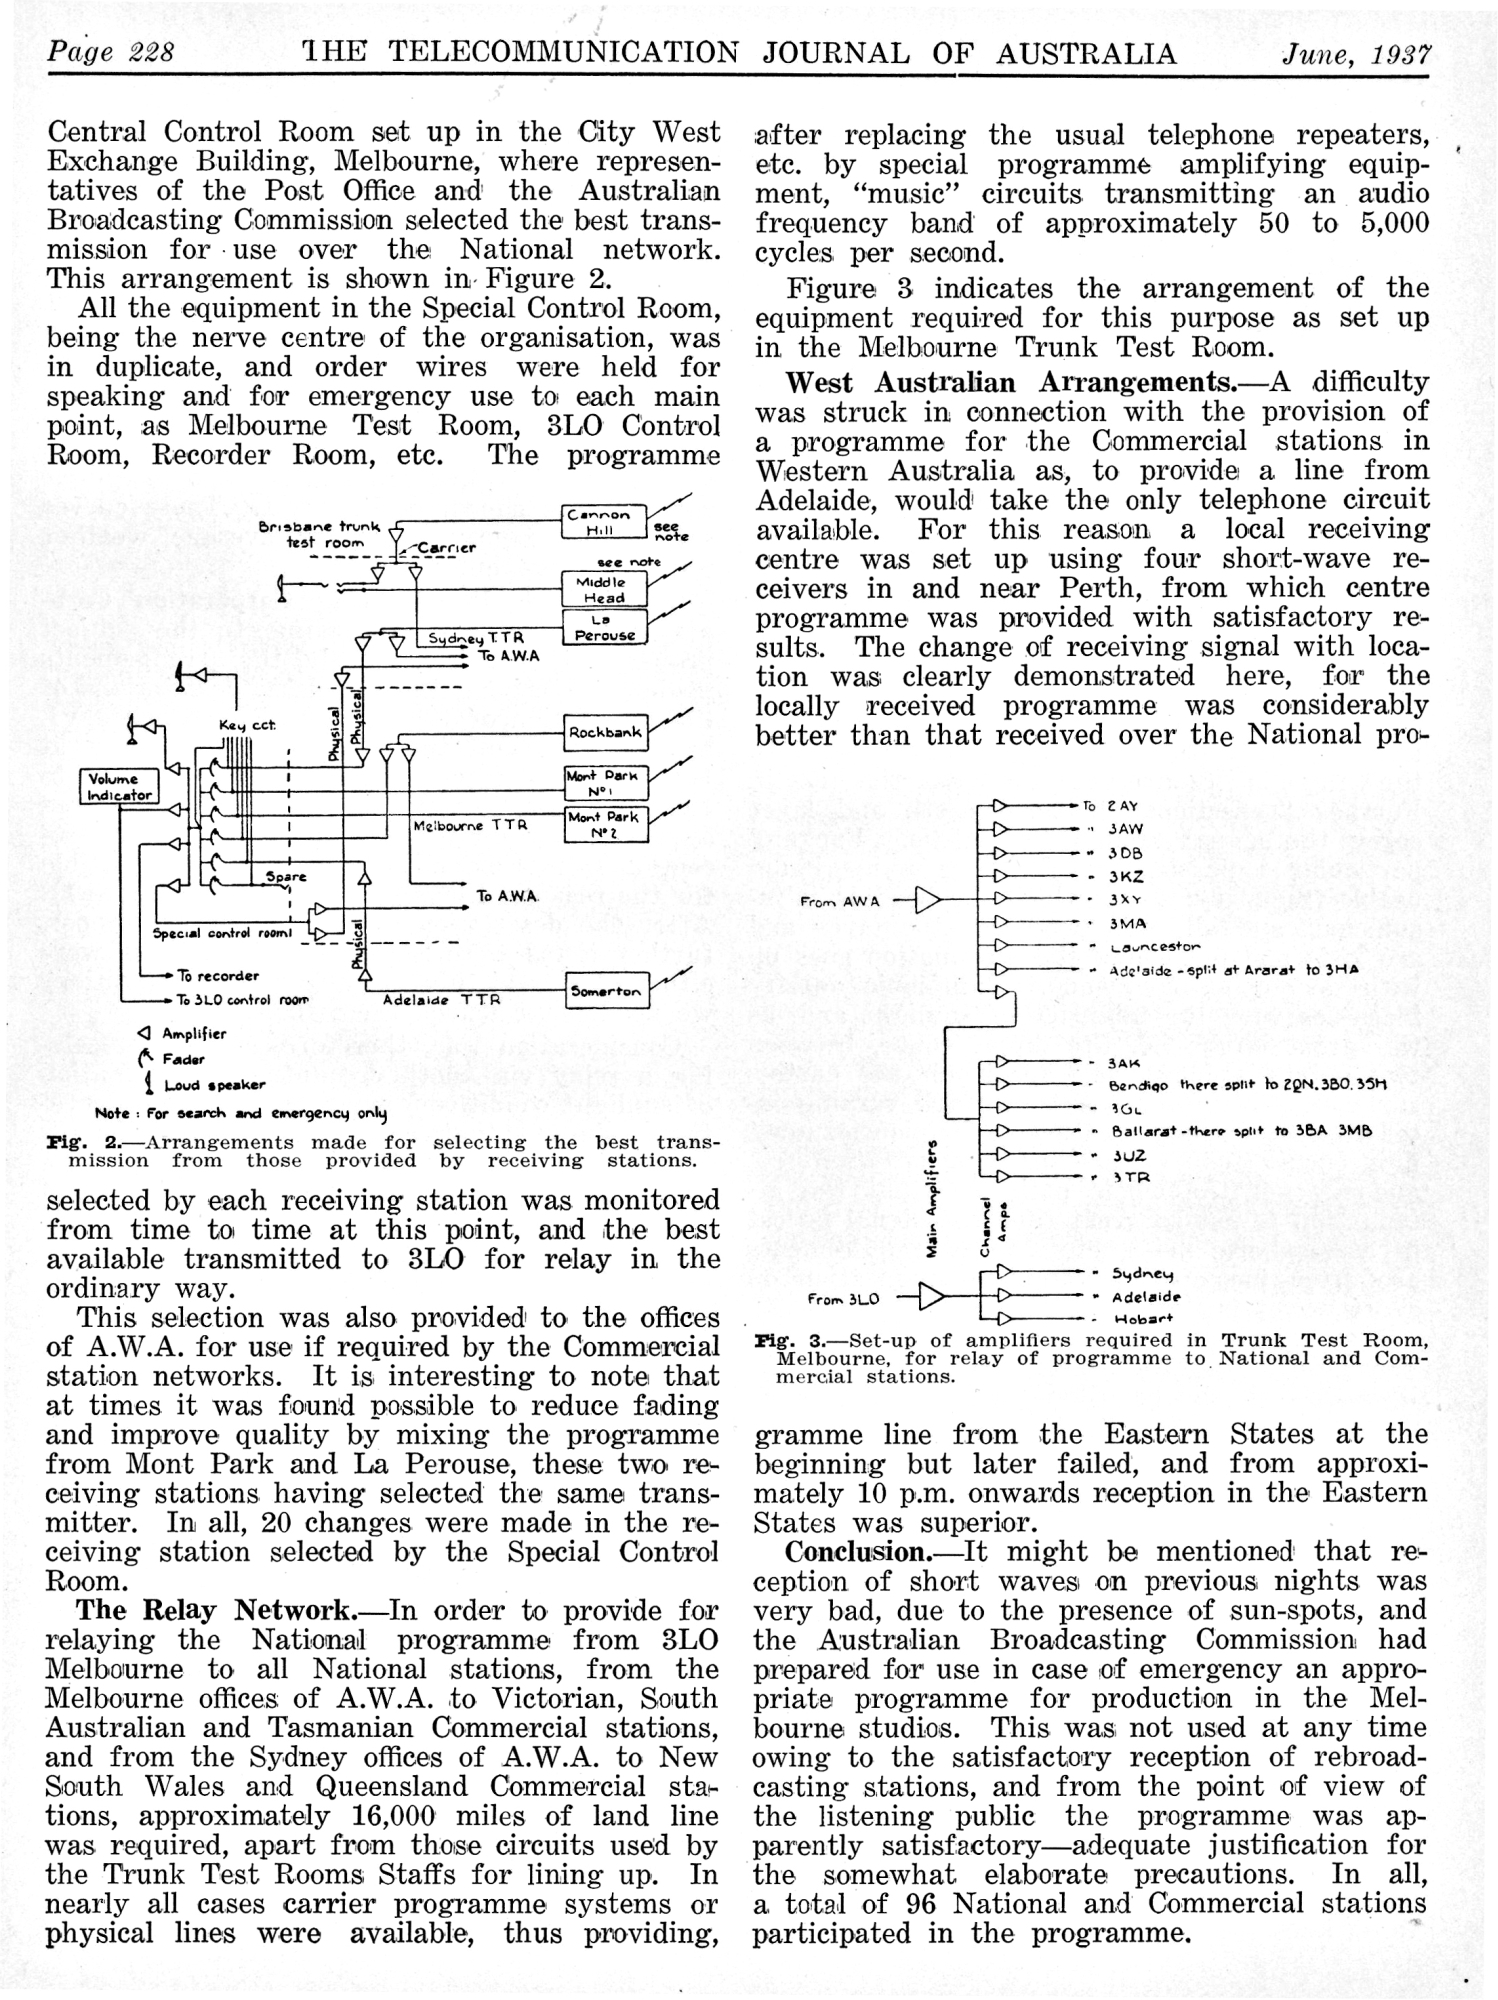 Page 2 of historical paper